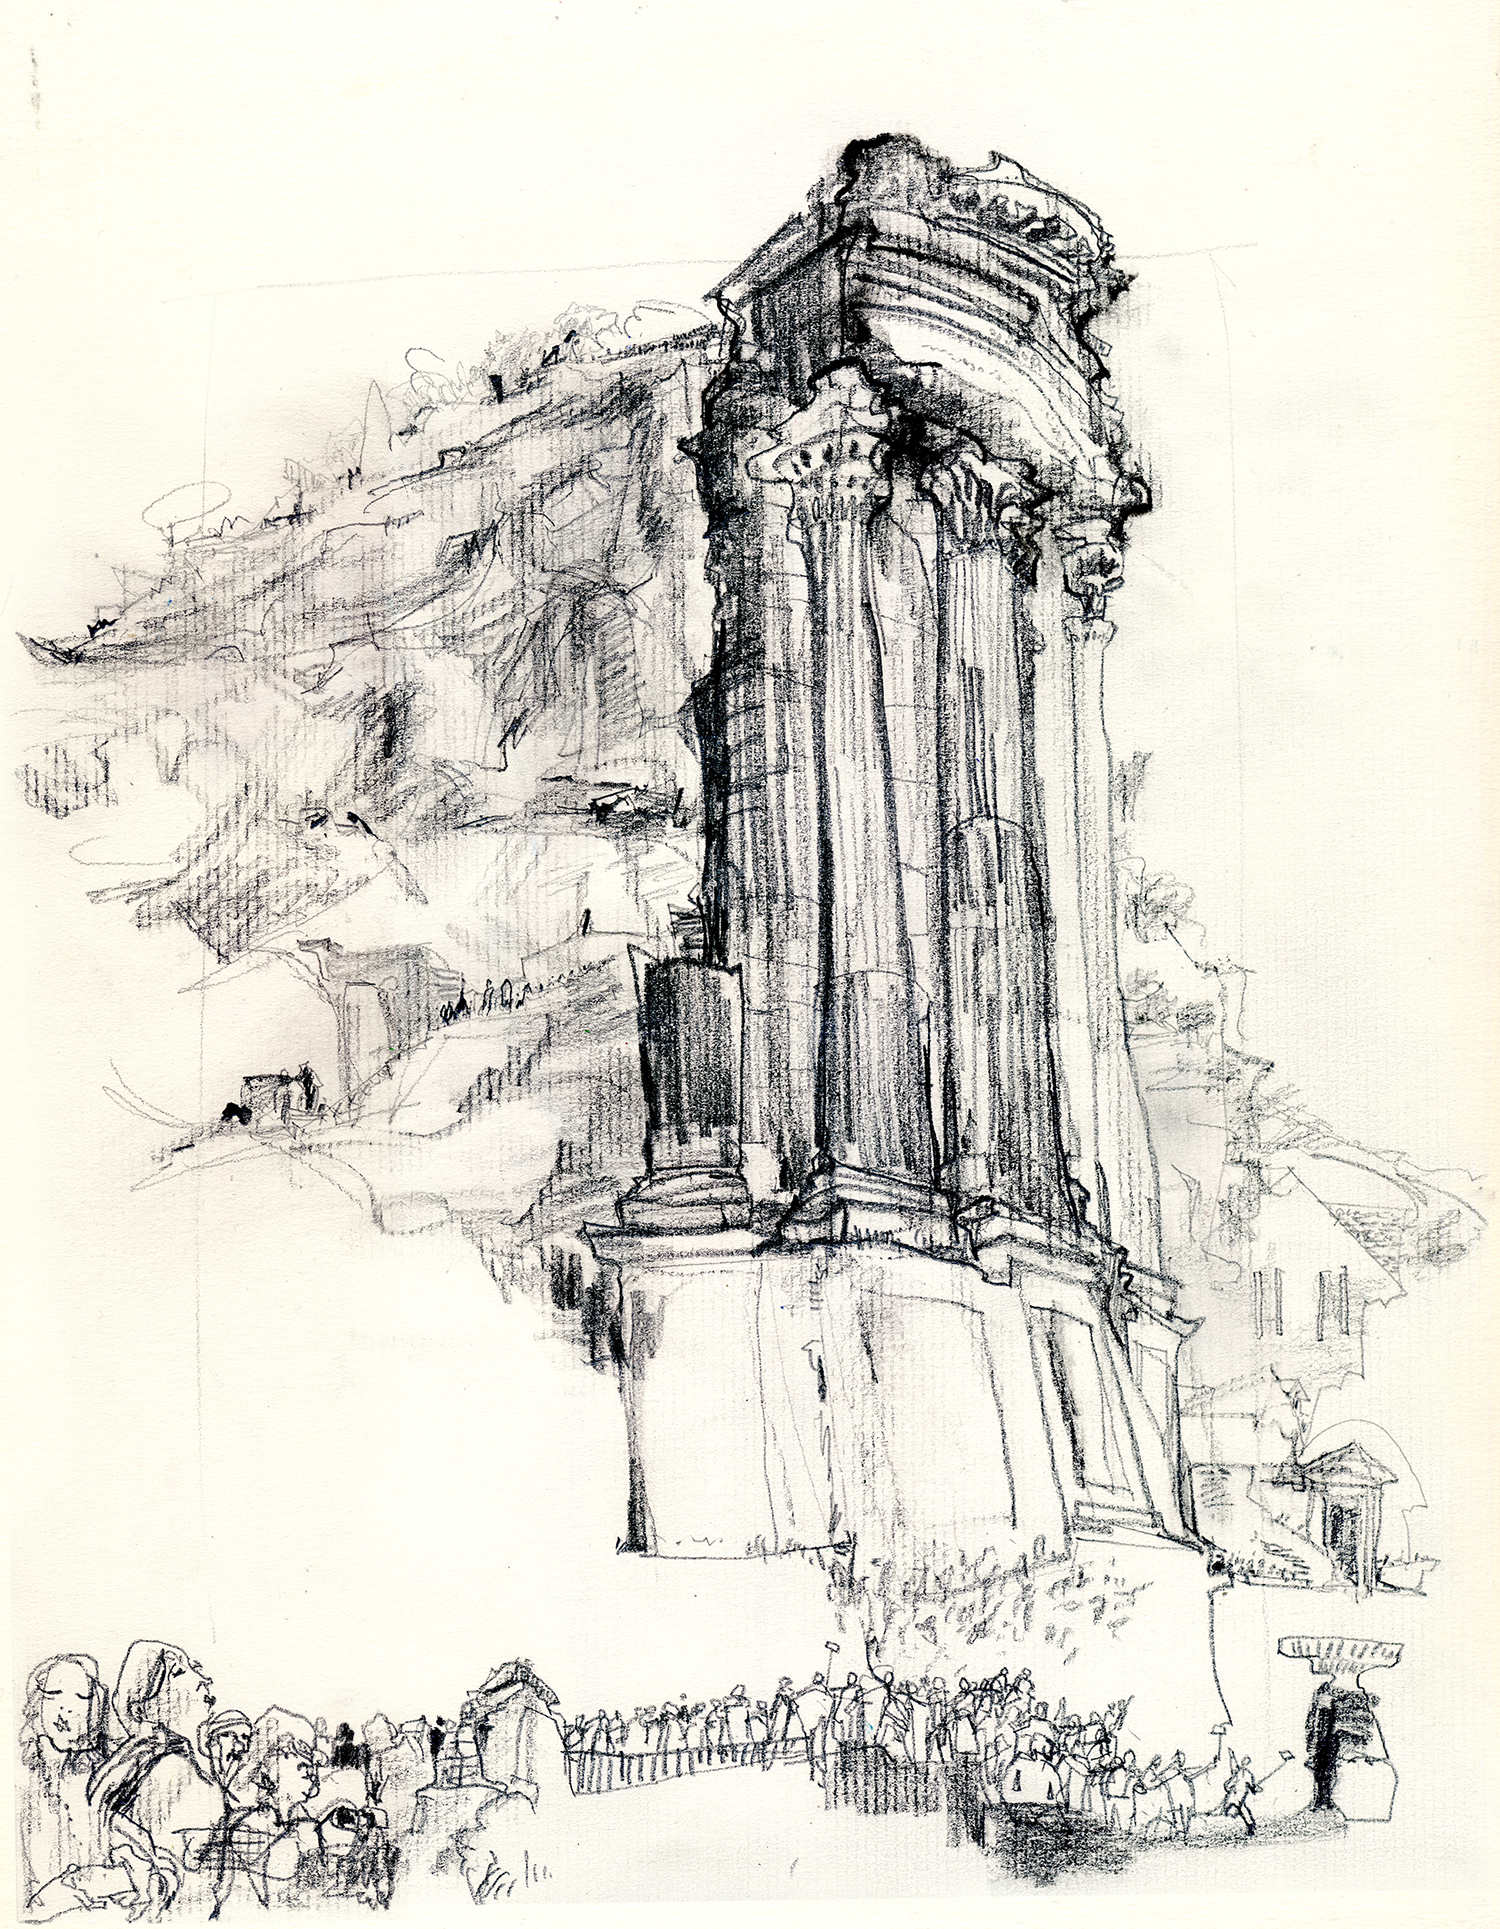 Temple of Vesta, Roman Forum